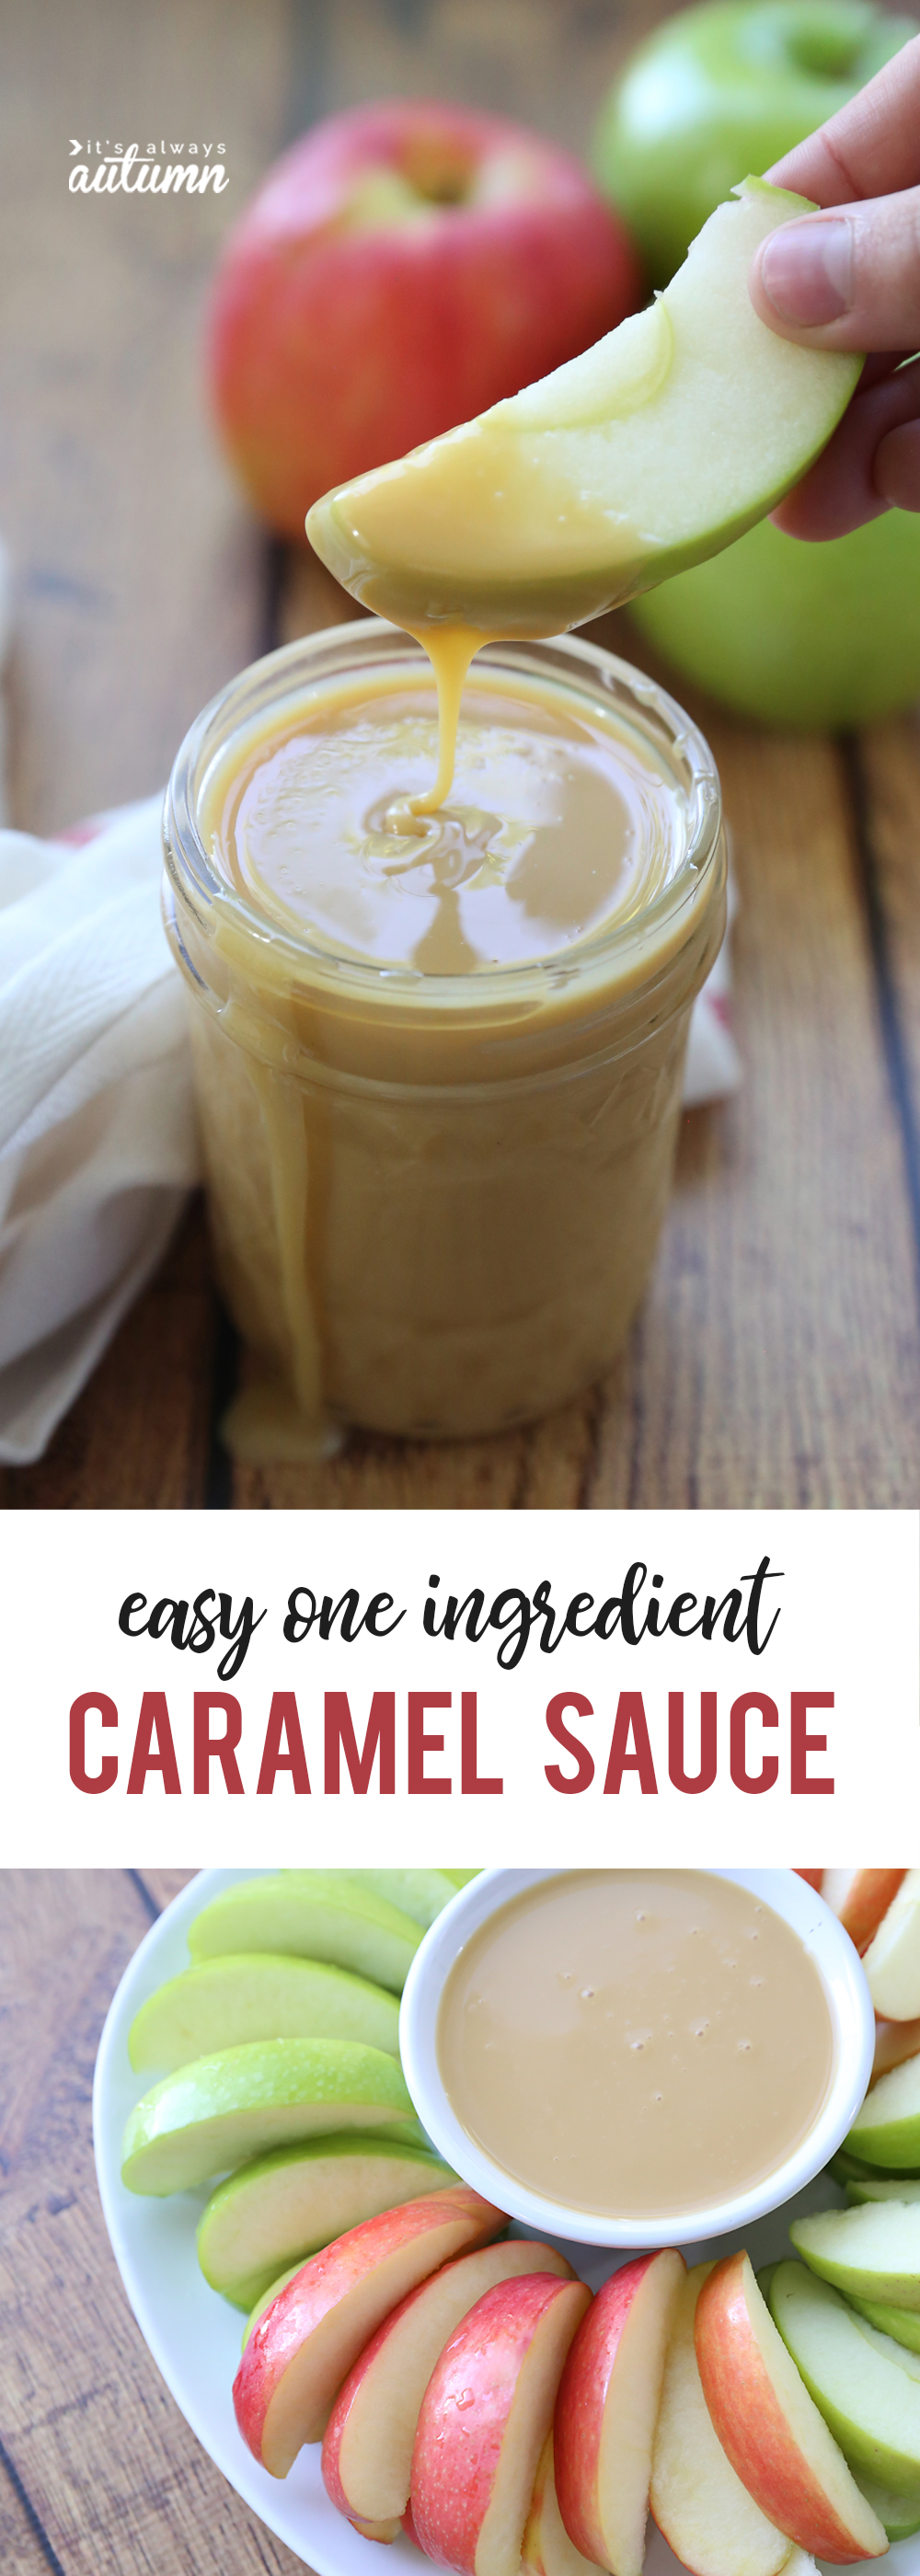 Learn how to make sweetened condensed milk caramel the SAFE and easy way.